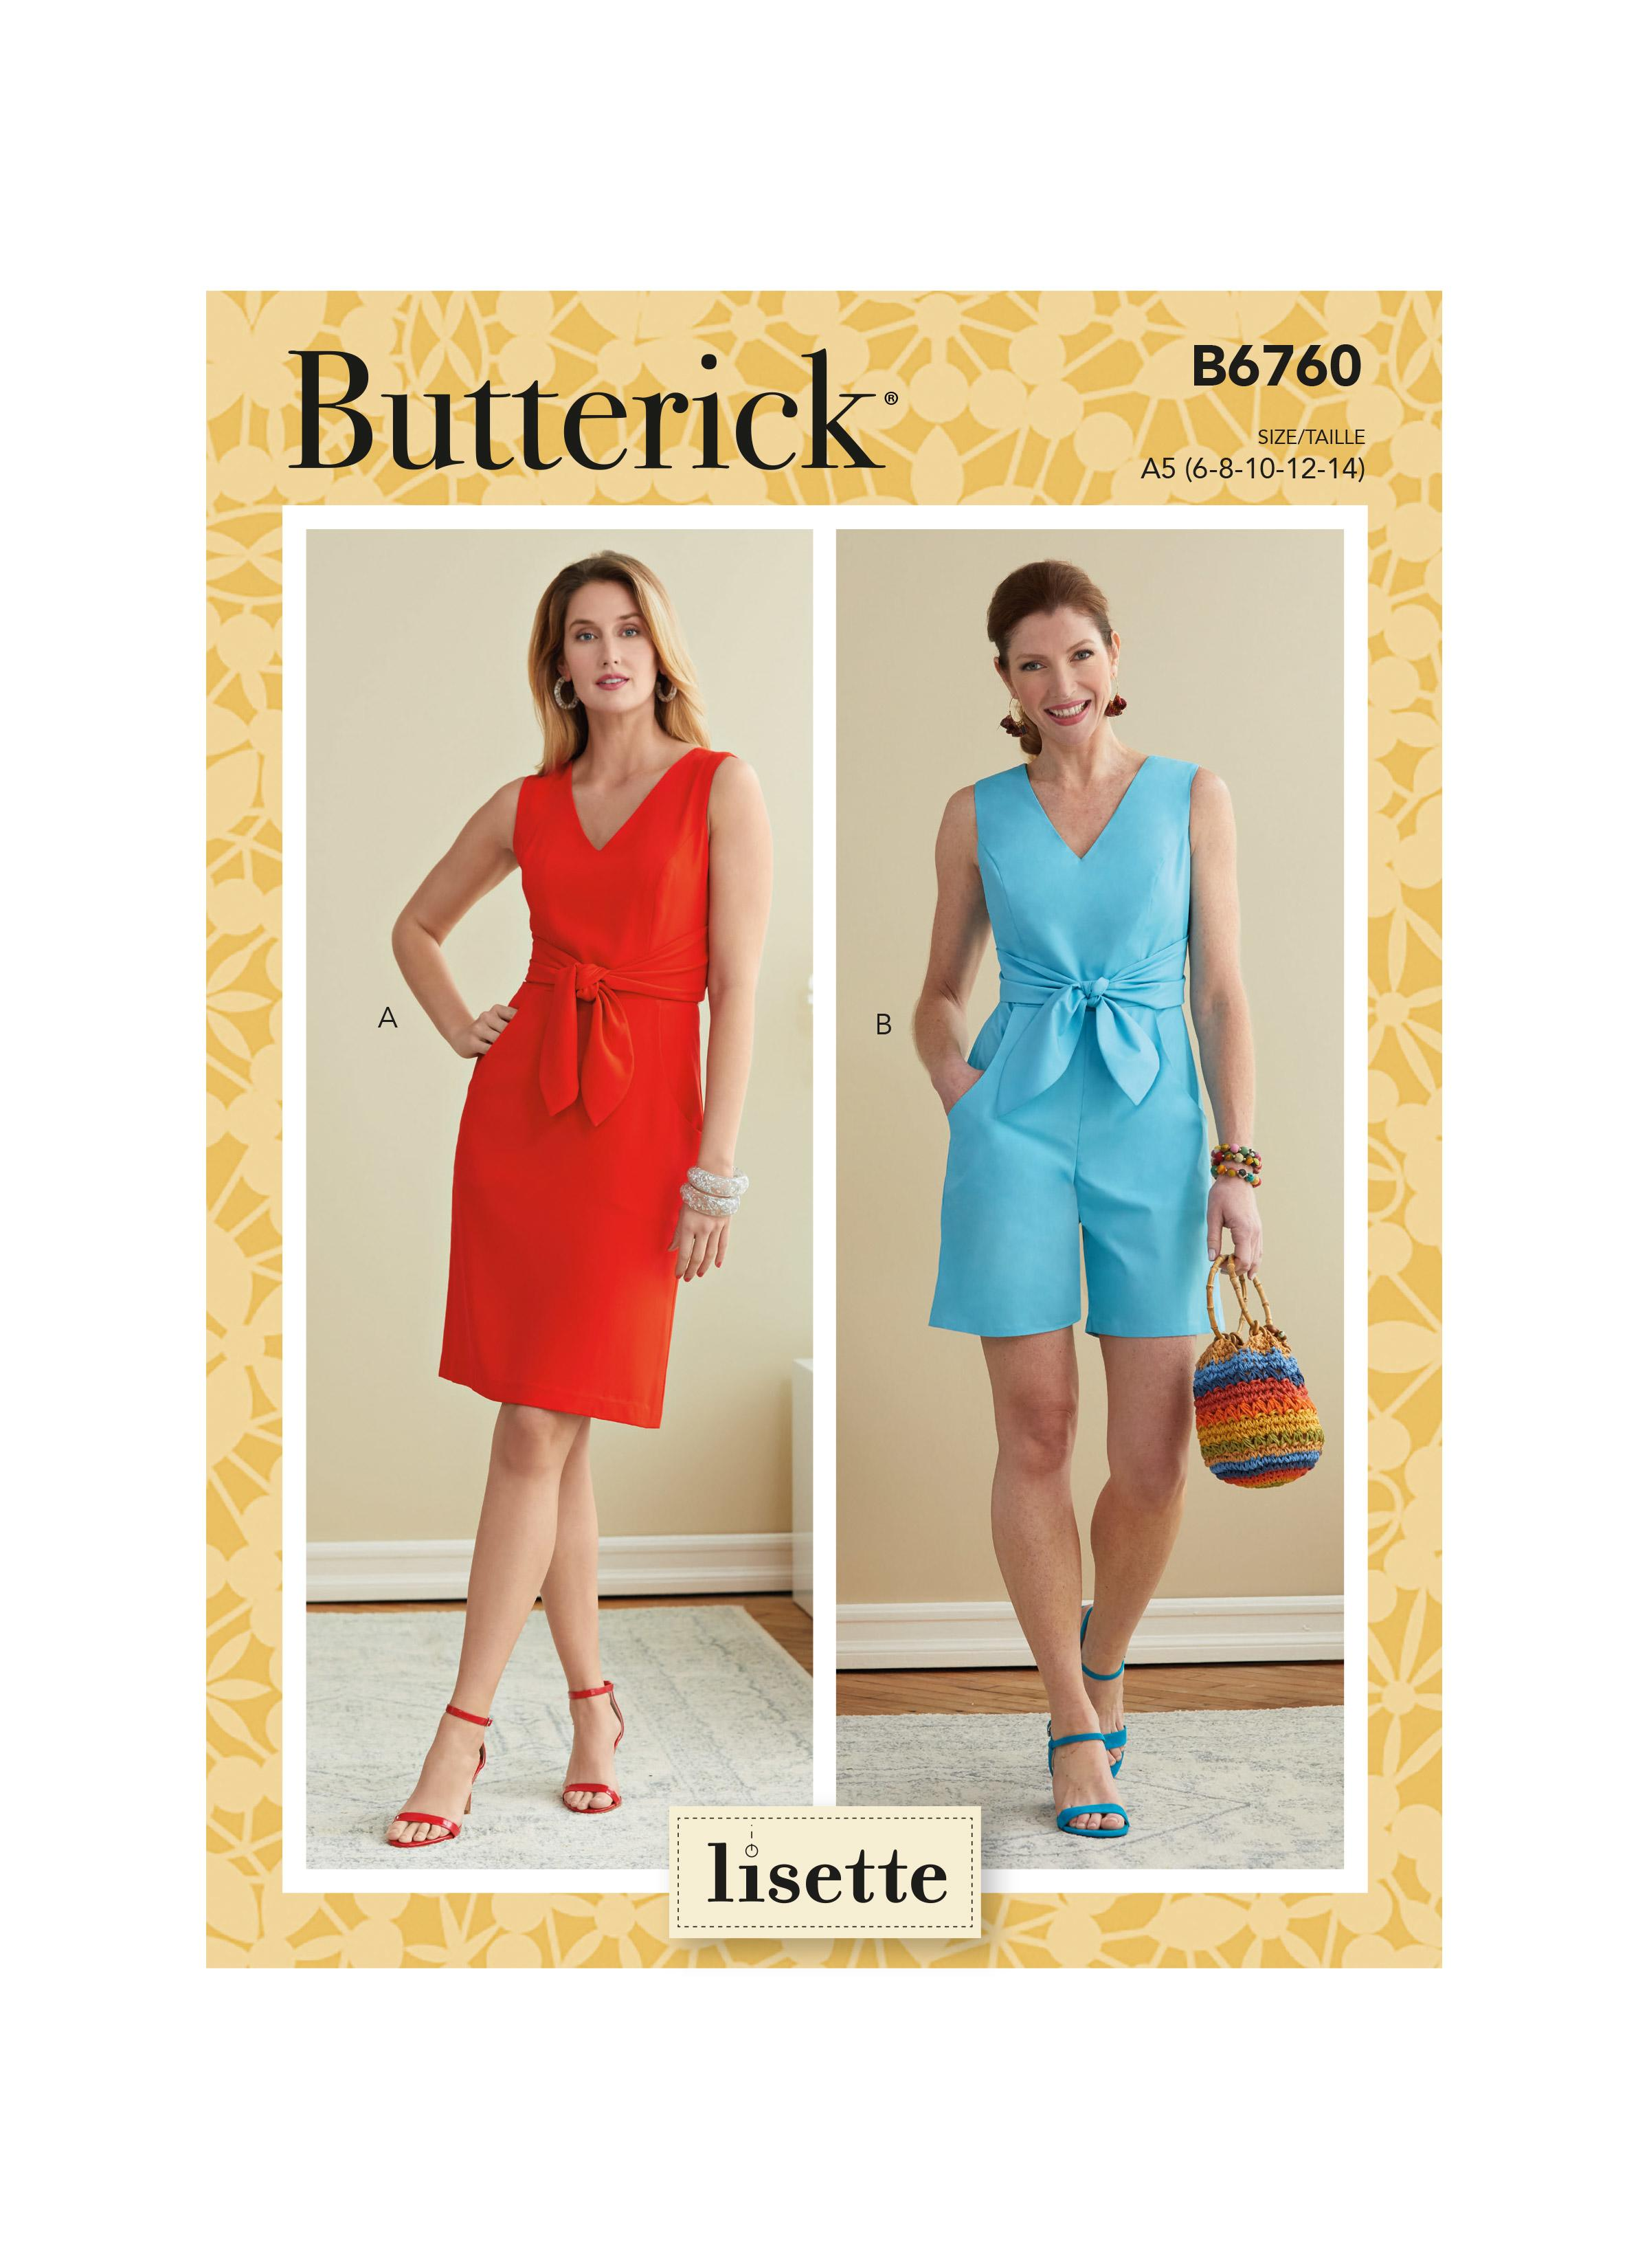 Butterick B6760 Misses' Dress and Playsuit. Lisette.